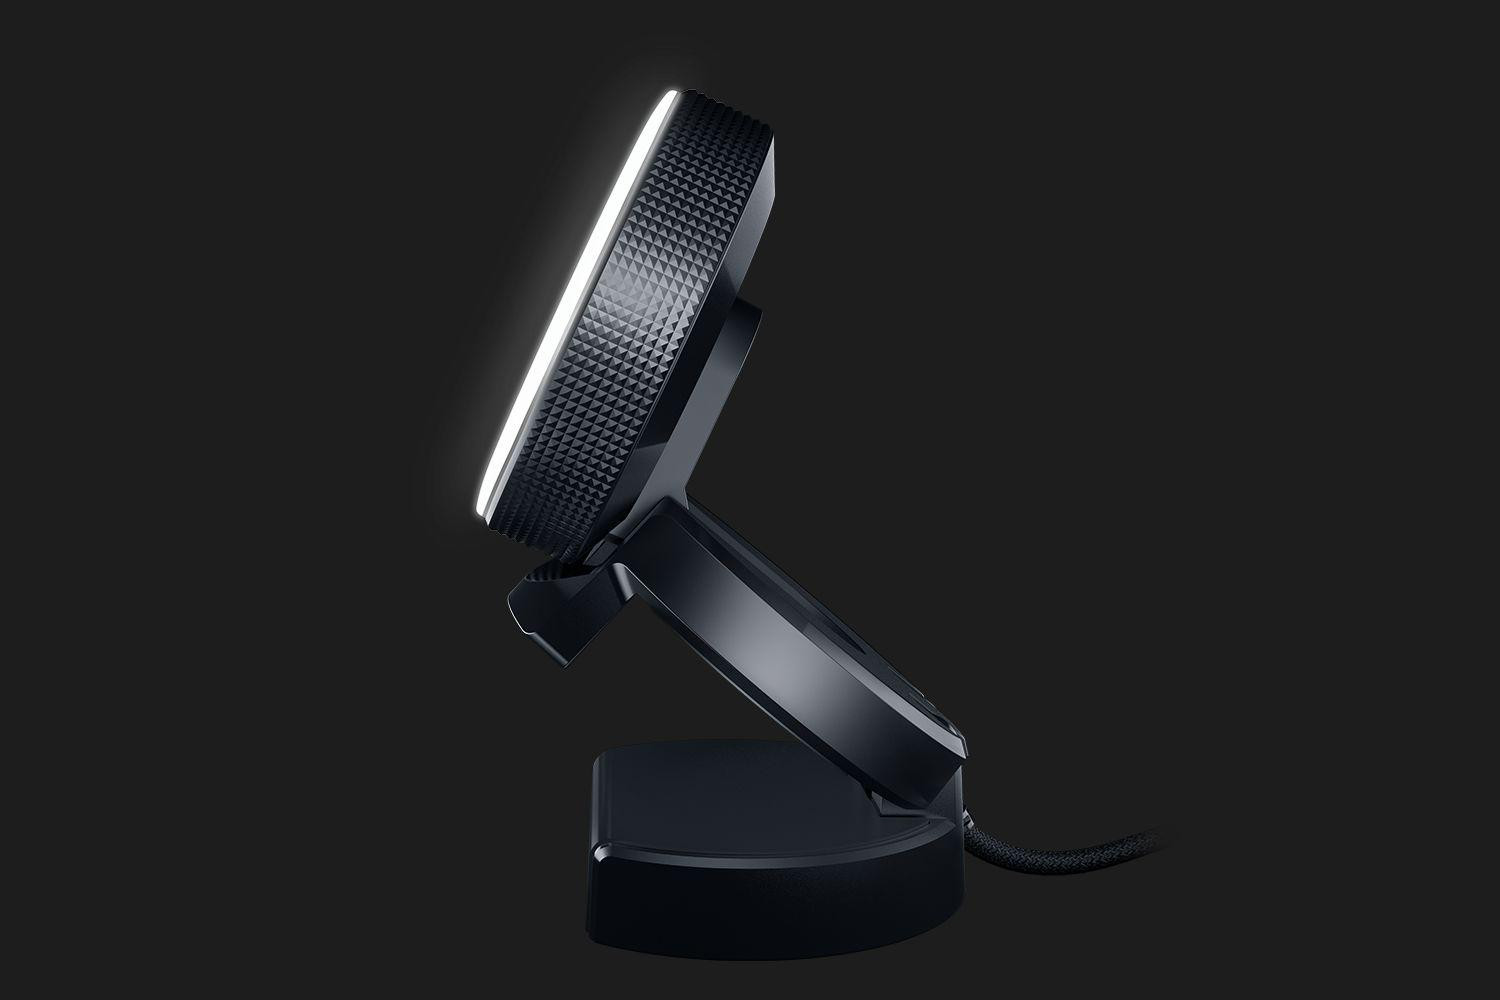 Webcam Razer Kiyo HD 720p, Image resolution: 4 Megapixels, Still Image Resolution: 2688x1520, 720p up to 60fps, microfon, USB, Cable Length: 1.5 meters braided cable, Compatible with Open Broadcaster Software and Xspli - imaginea 2